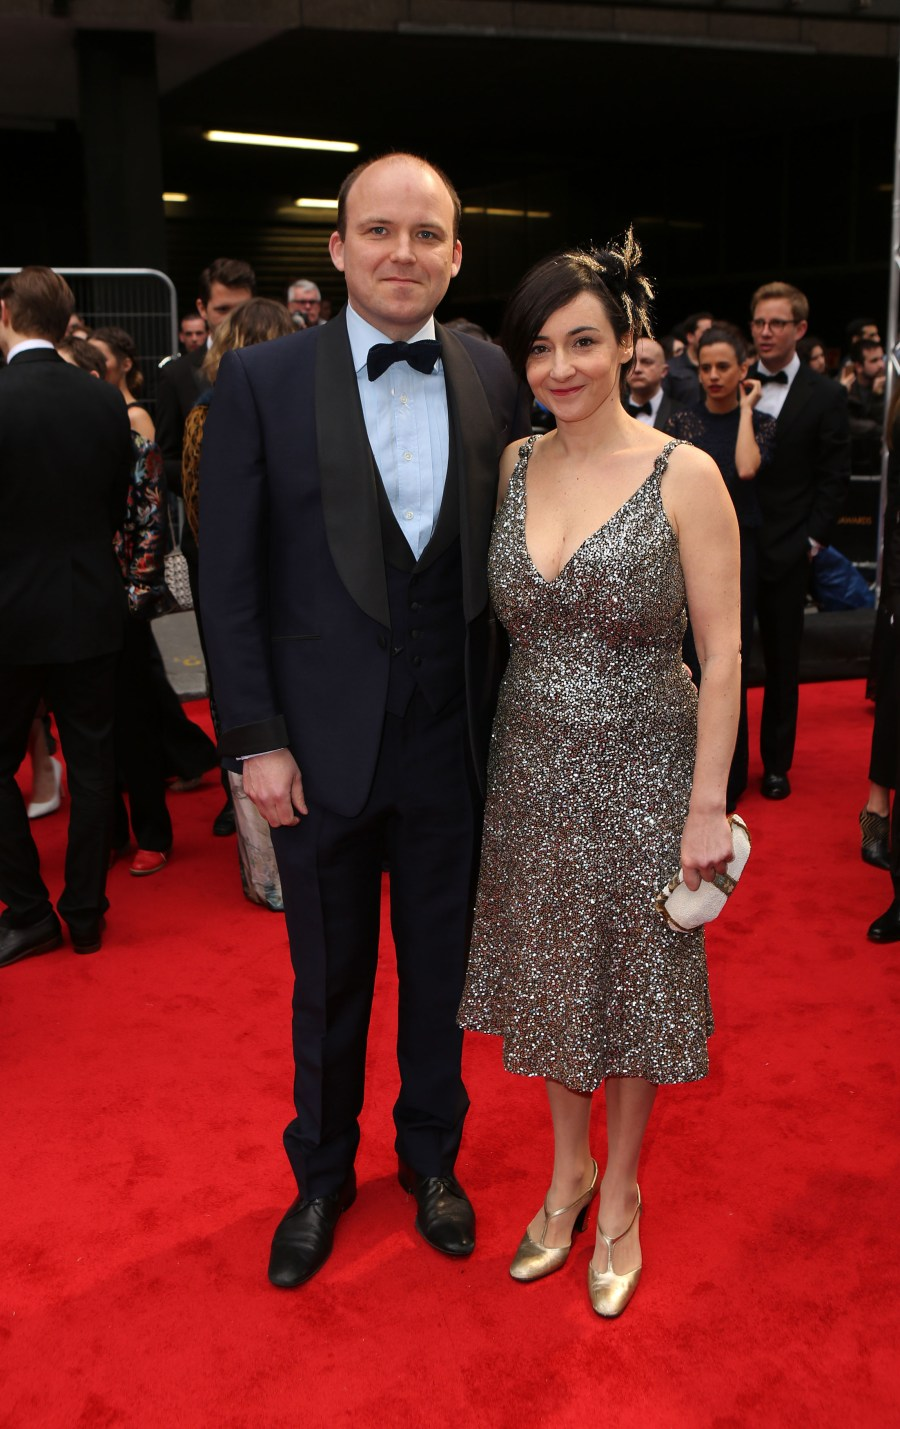 Rory Kinnear wearing Chester Barrie Official Sponsors of Menswear at the Olivier Awards. Gareth Davies Photographer +44 (0) 7774 899 744 Snap Media Productions Twitter: SNAPMEDIAPRO